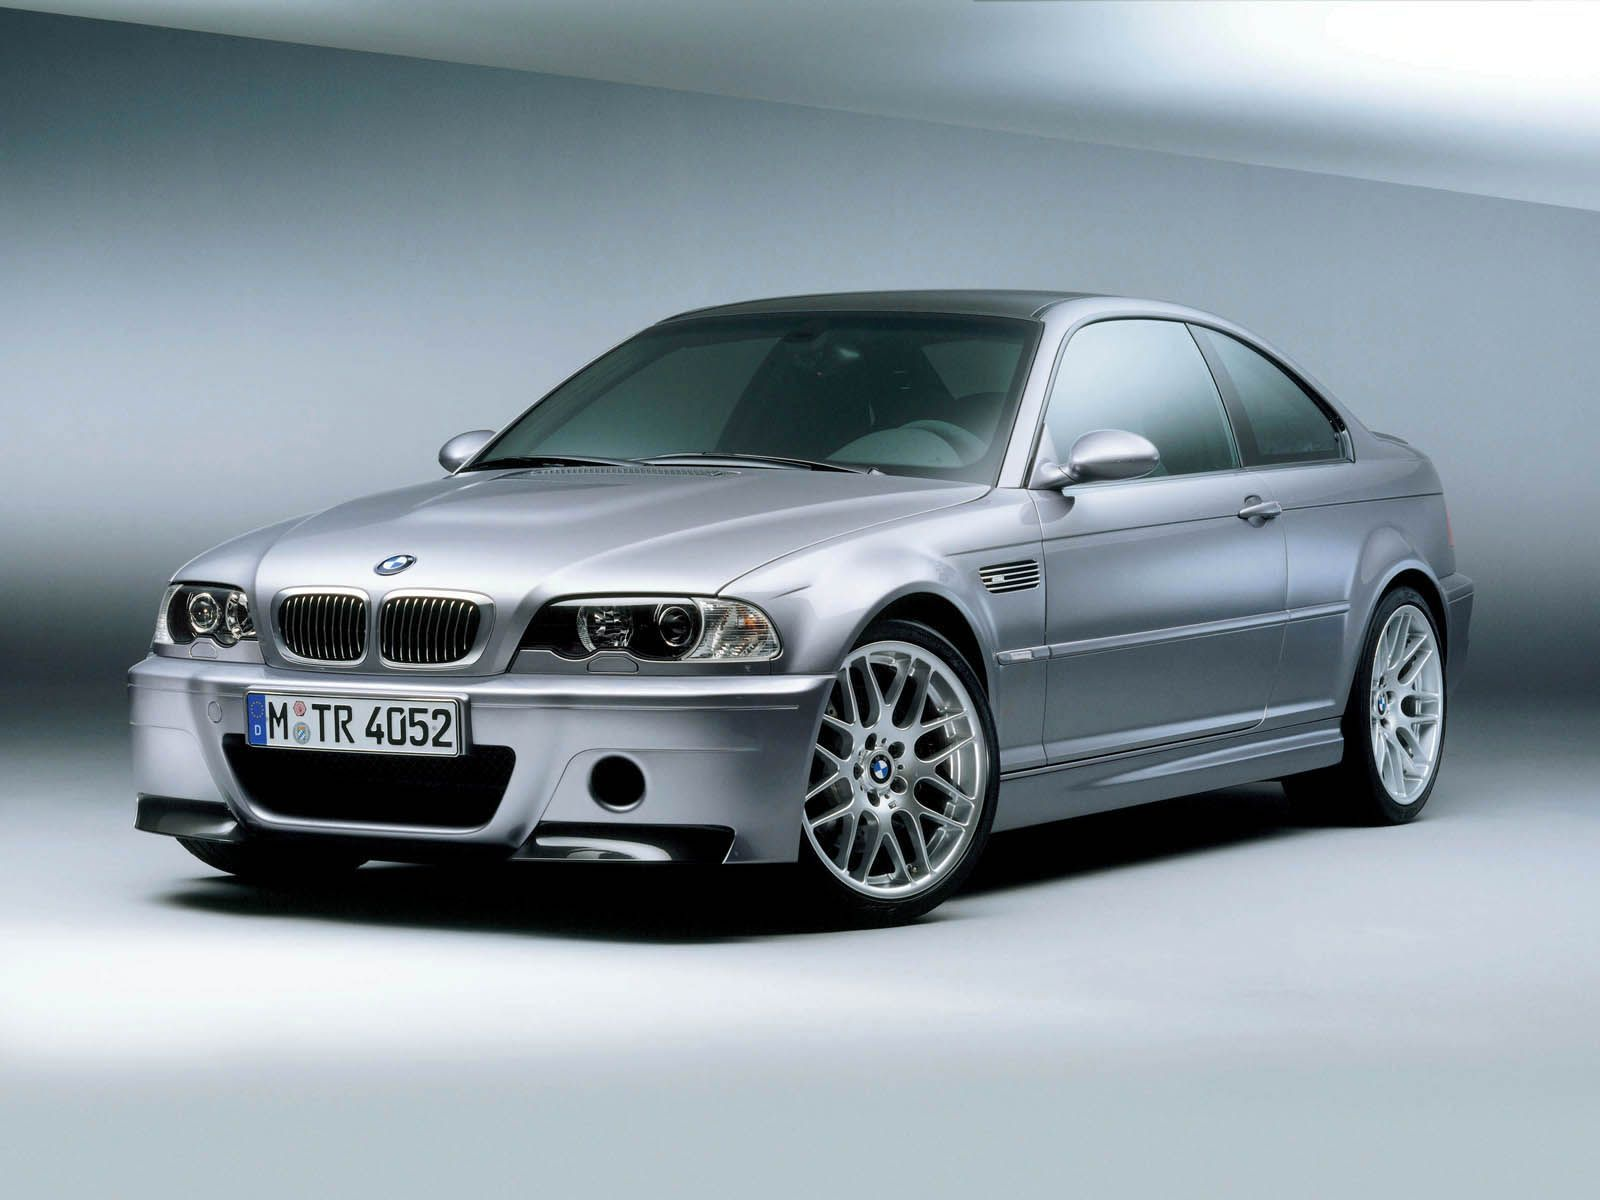 bmw 3 series compact (e46) 2003 models #11